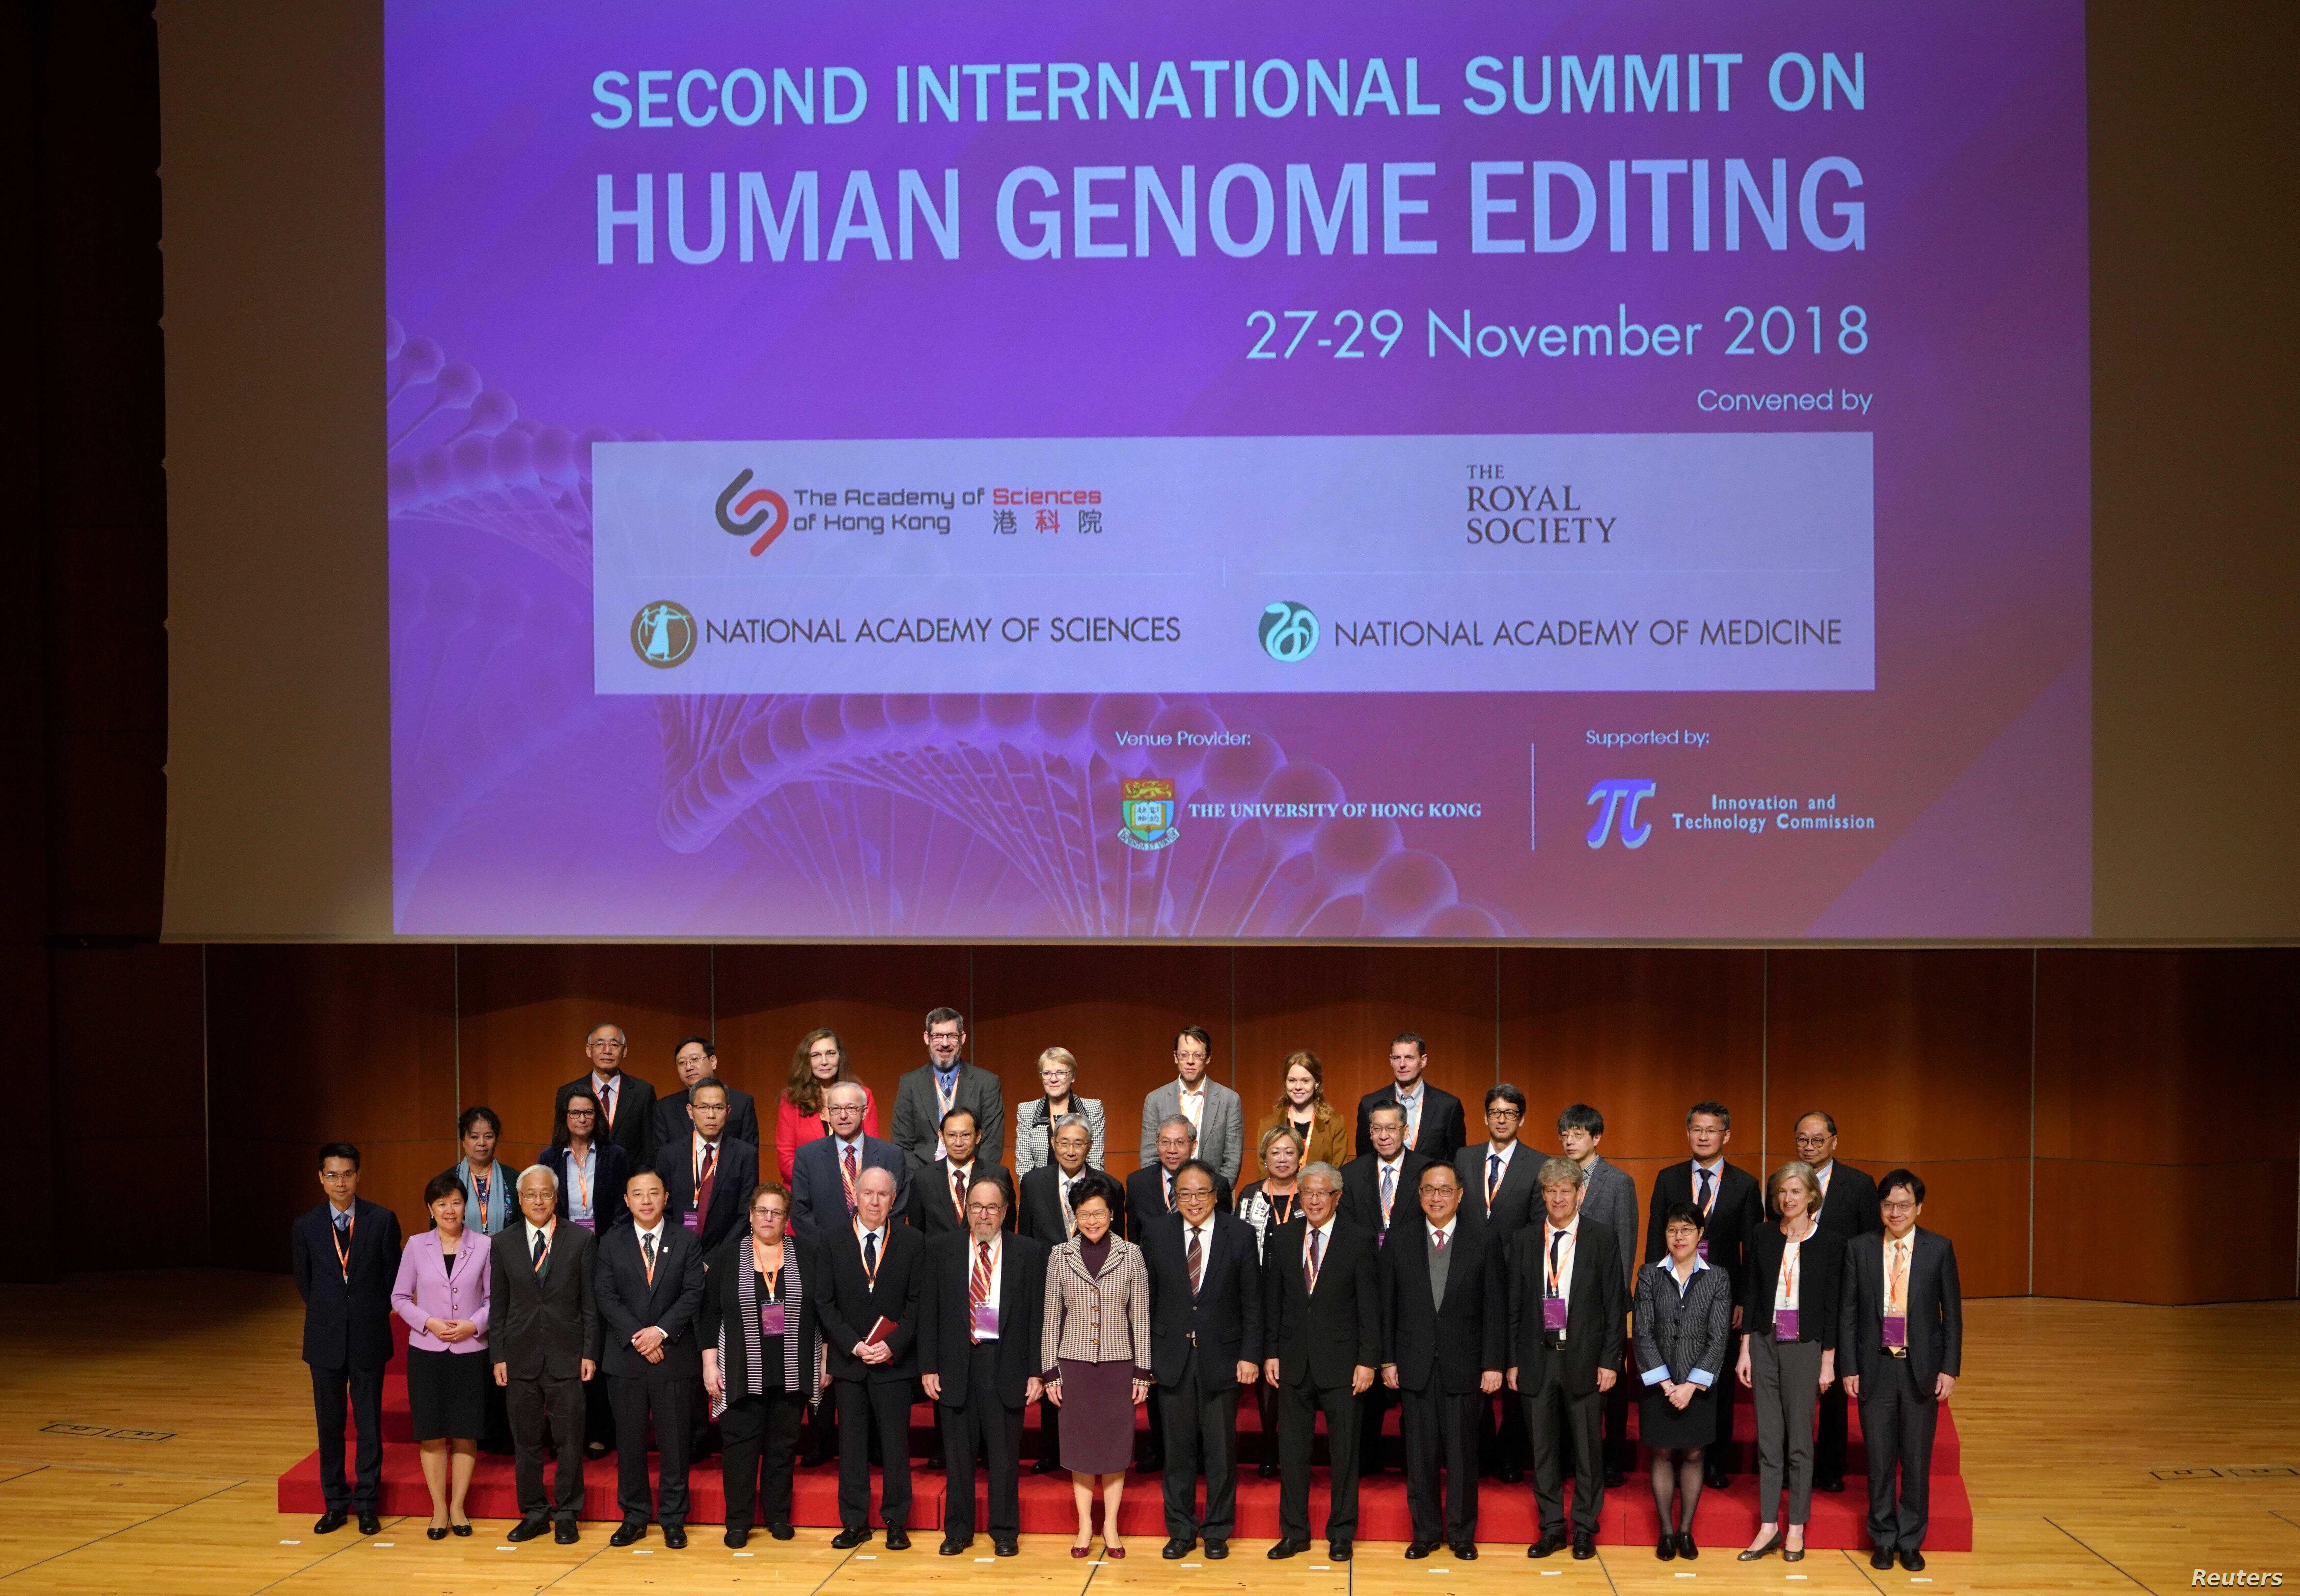 Hong Kong Executive Carrie Lam (C) and guests pose for a group photo during the International Summit on Human Genome Editing in Hong Kong, Nov. 27, 2018. (Zhang Wei/CNS via Reuters)